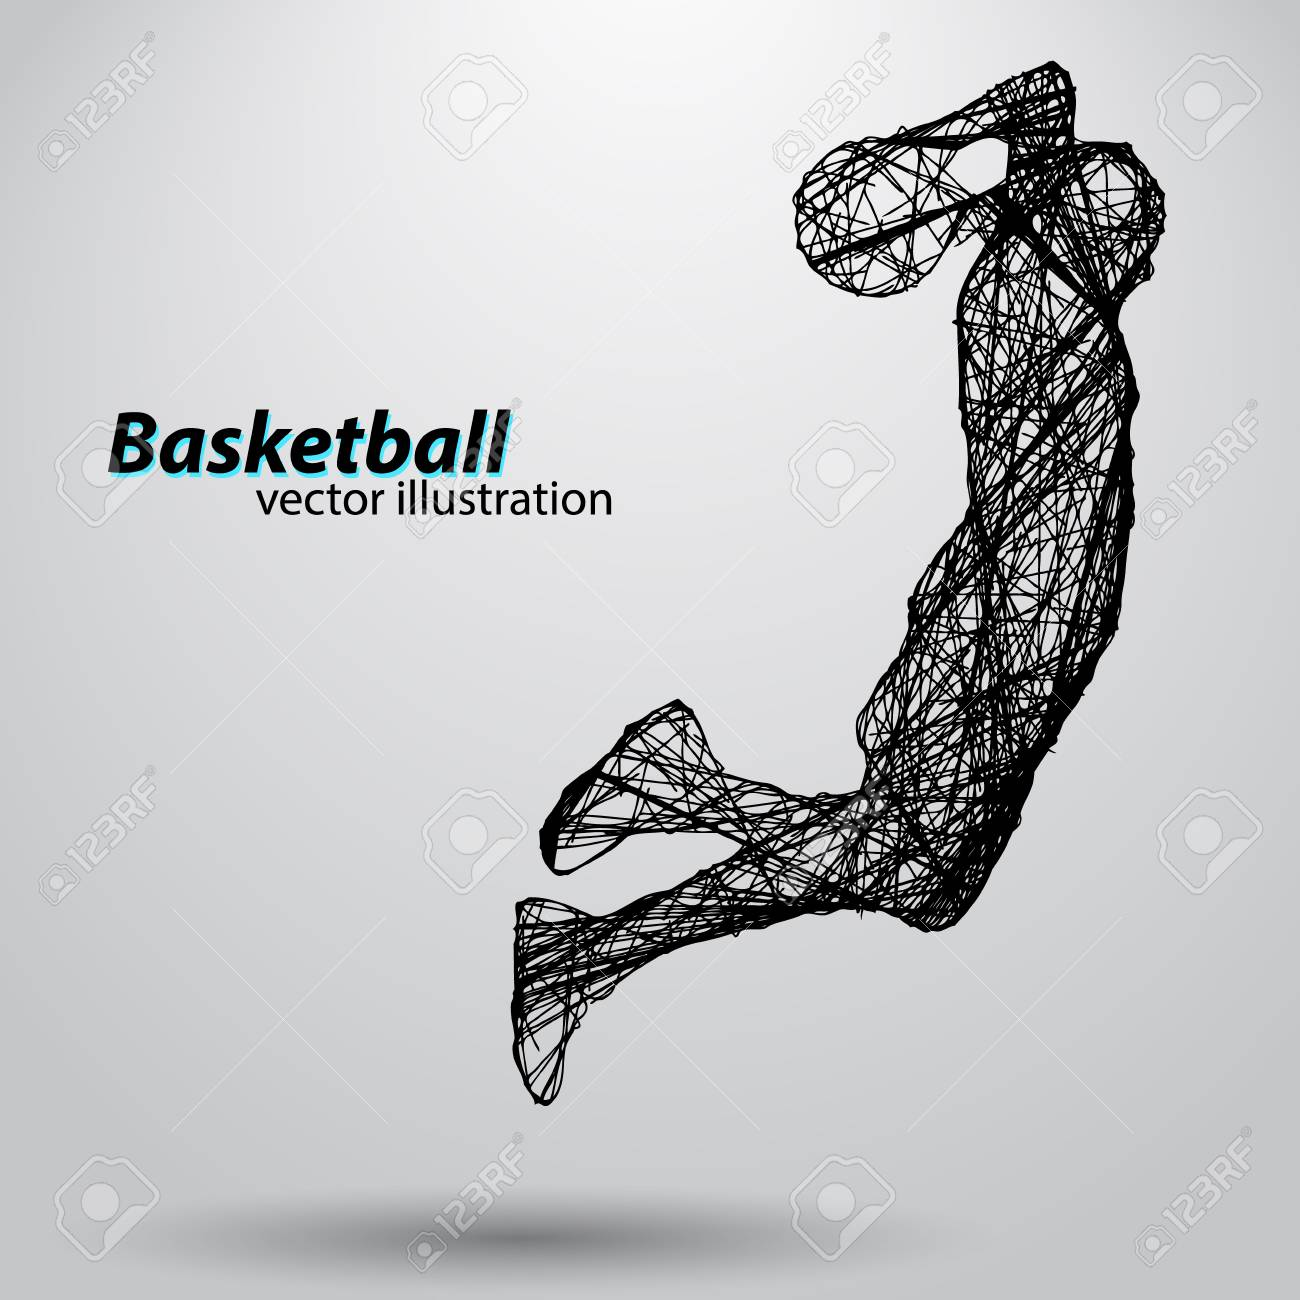 Silhouette of a basketball player. Background and text on a separate layer, color can be changed in one click - 67503181